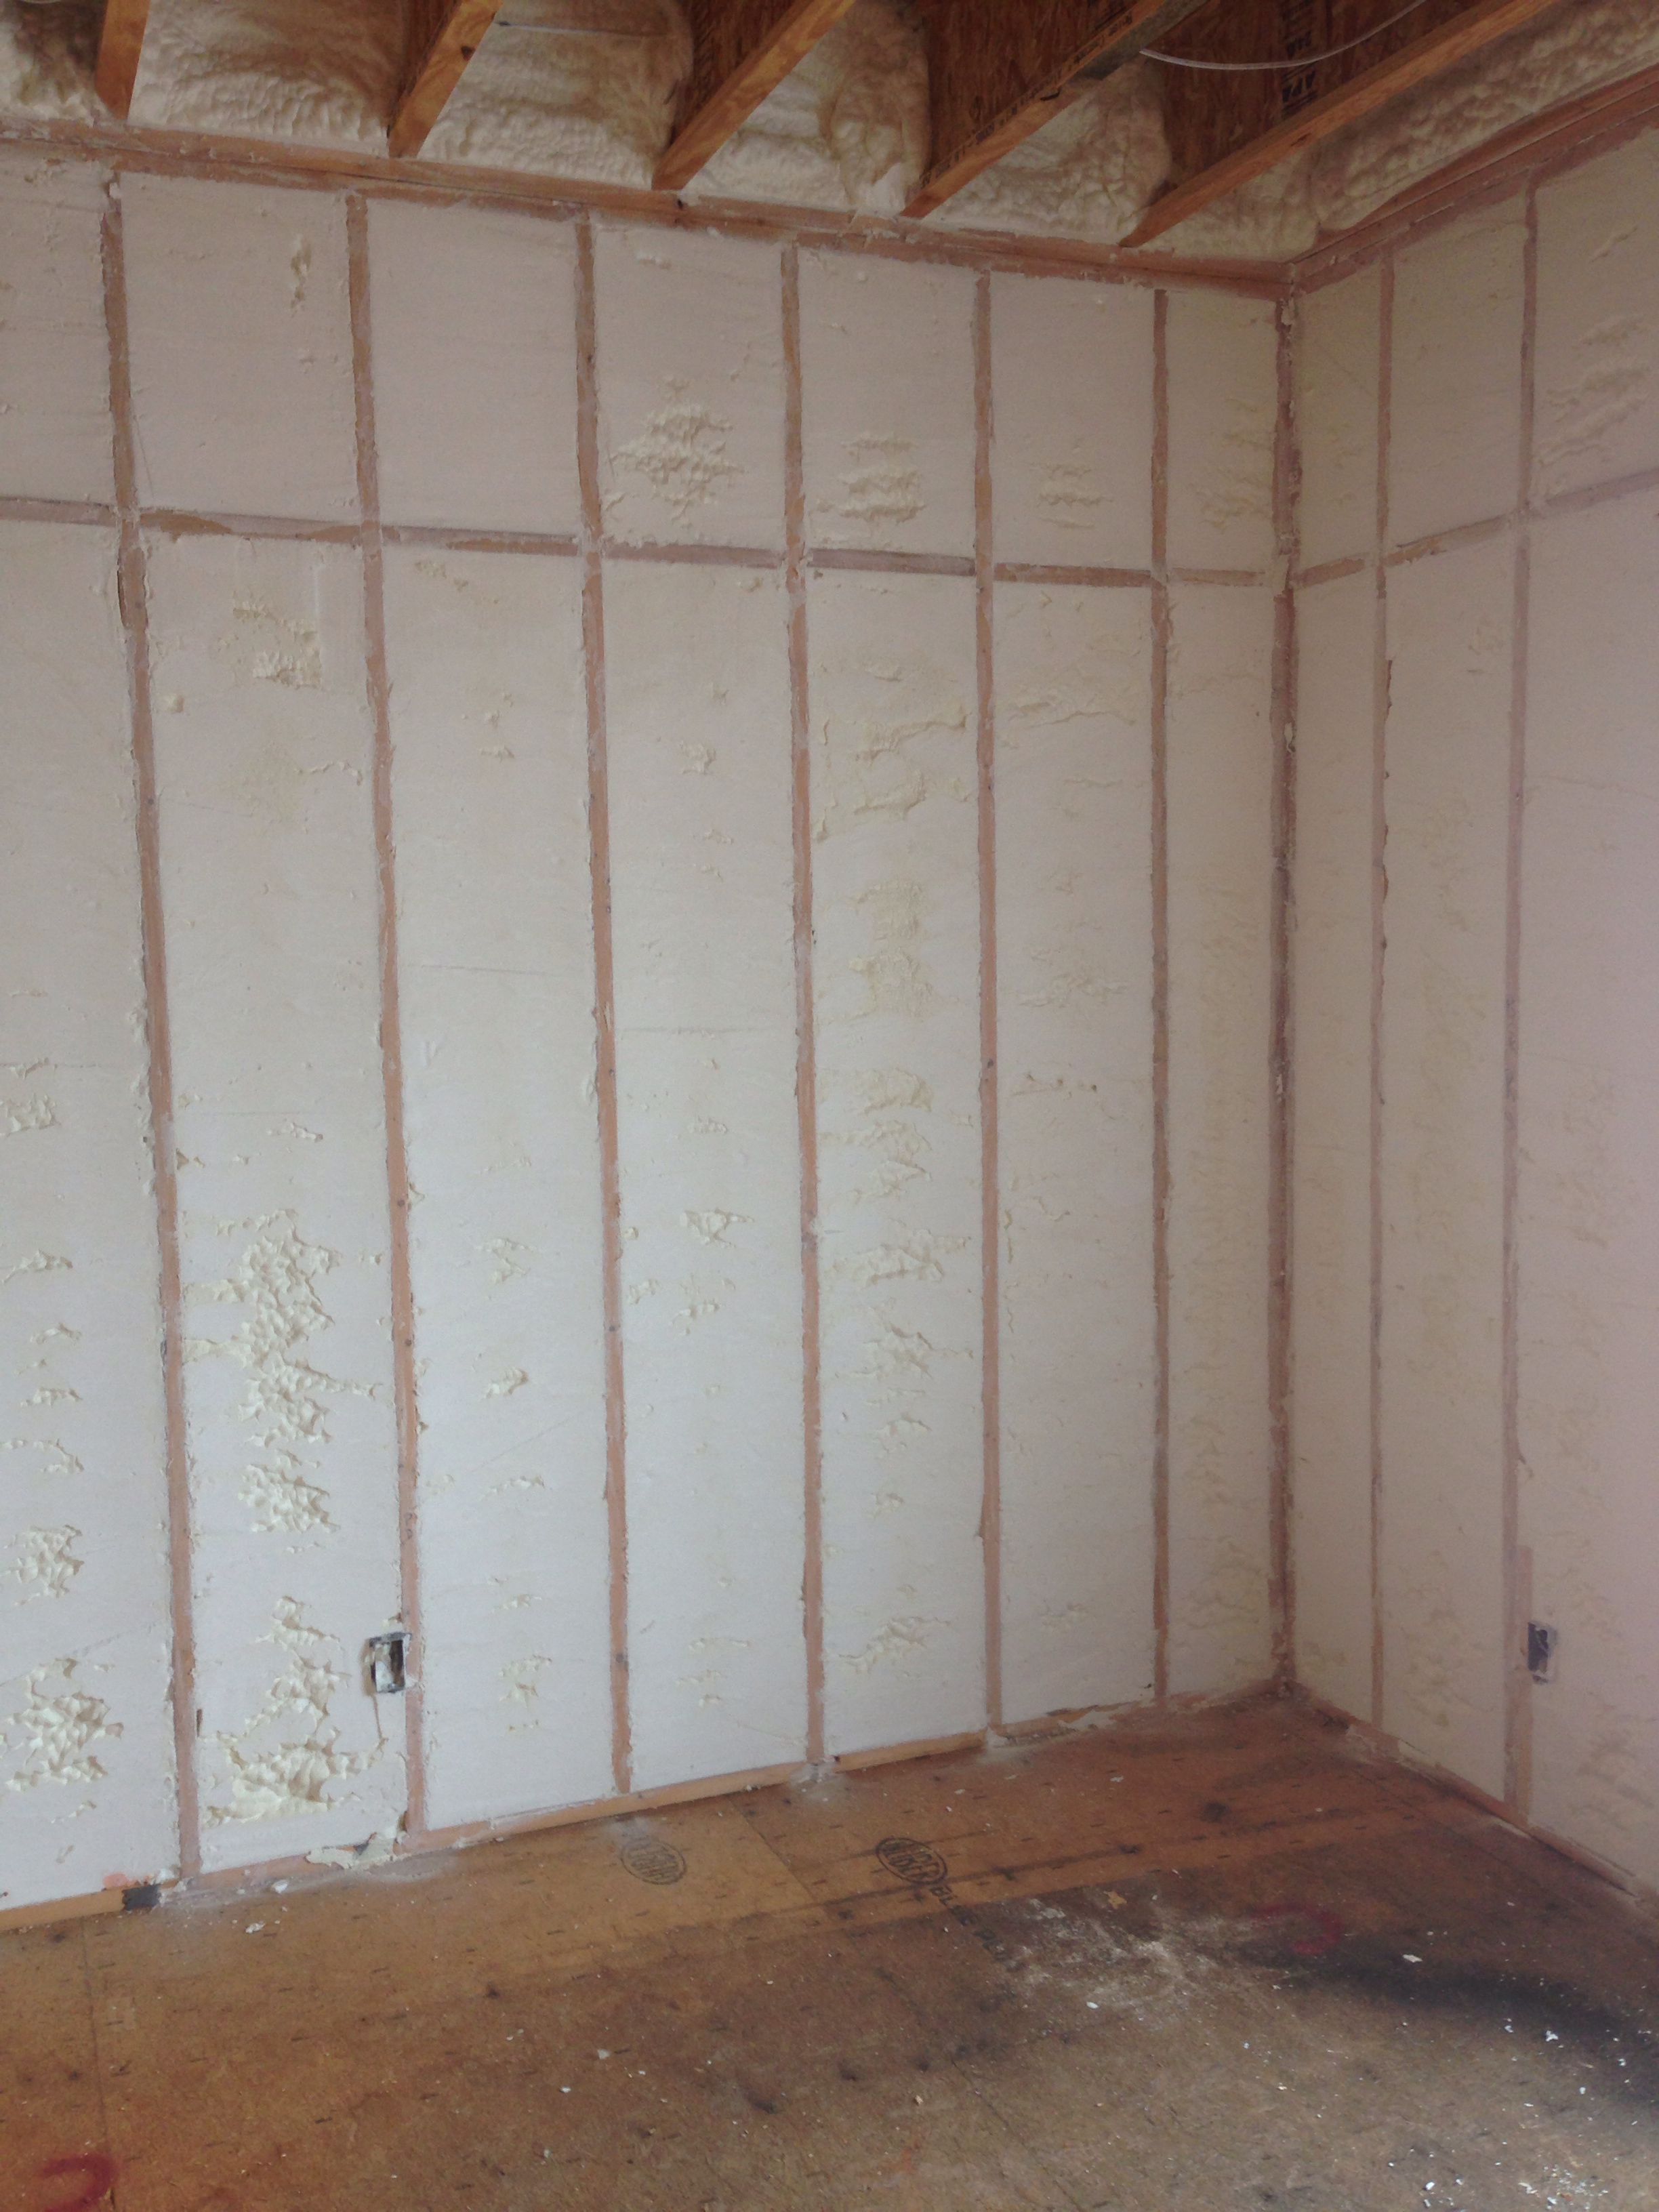 Exterior Walls Filled With Open Cell Spray Foam Insulation Makes A House Comfortable And Energy Efficient Installed By Mpi